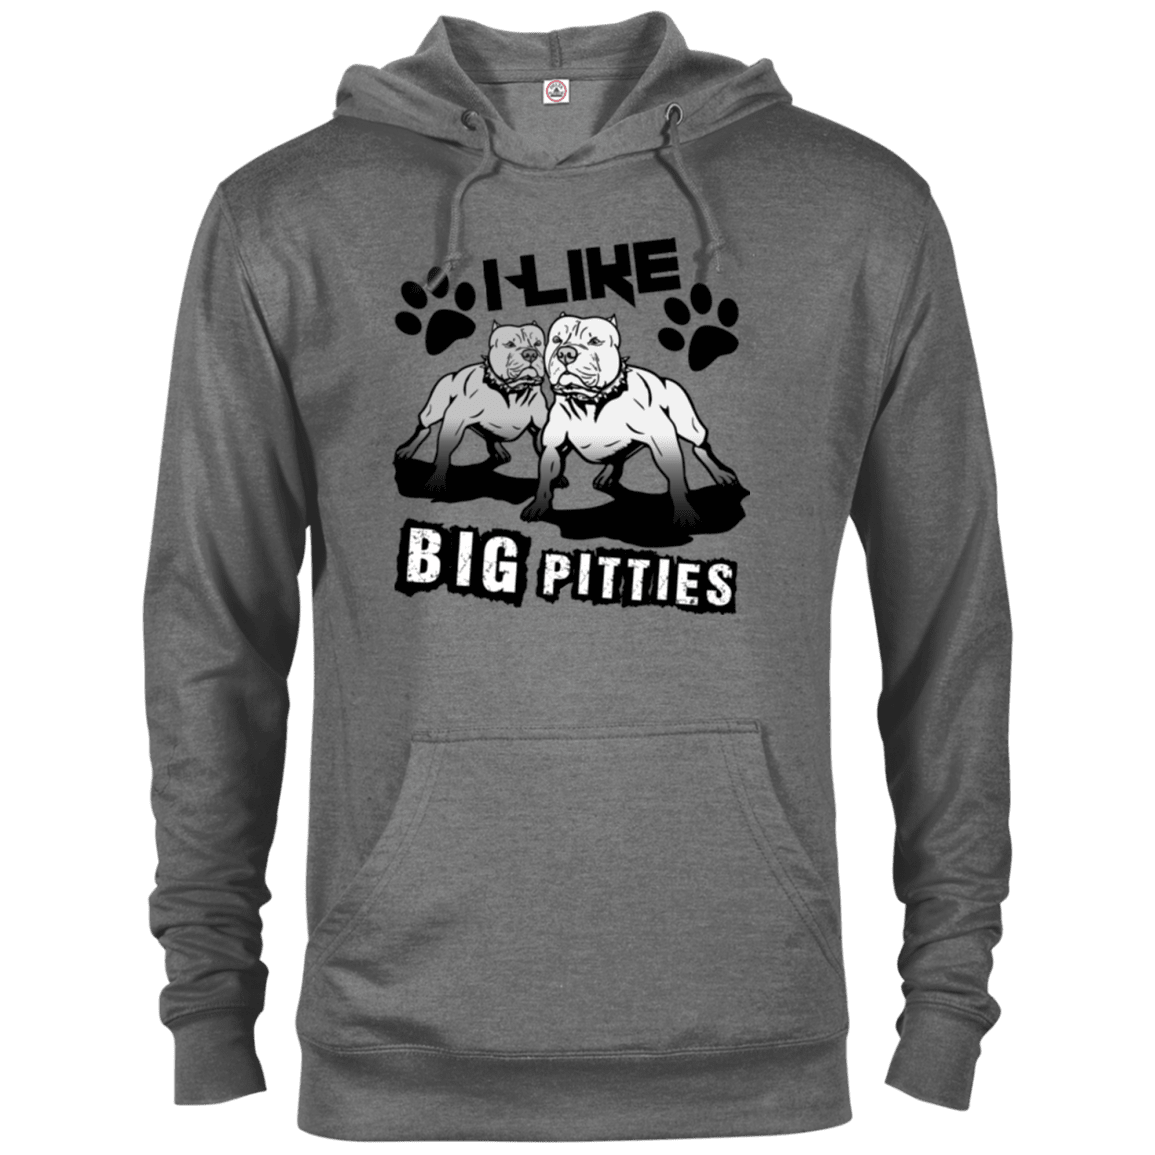 I Like Big Pitties Drk - 97200 Delta French Terry Hoodie Graphite Heather X-Small - Little Pit Shop